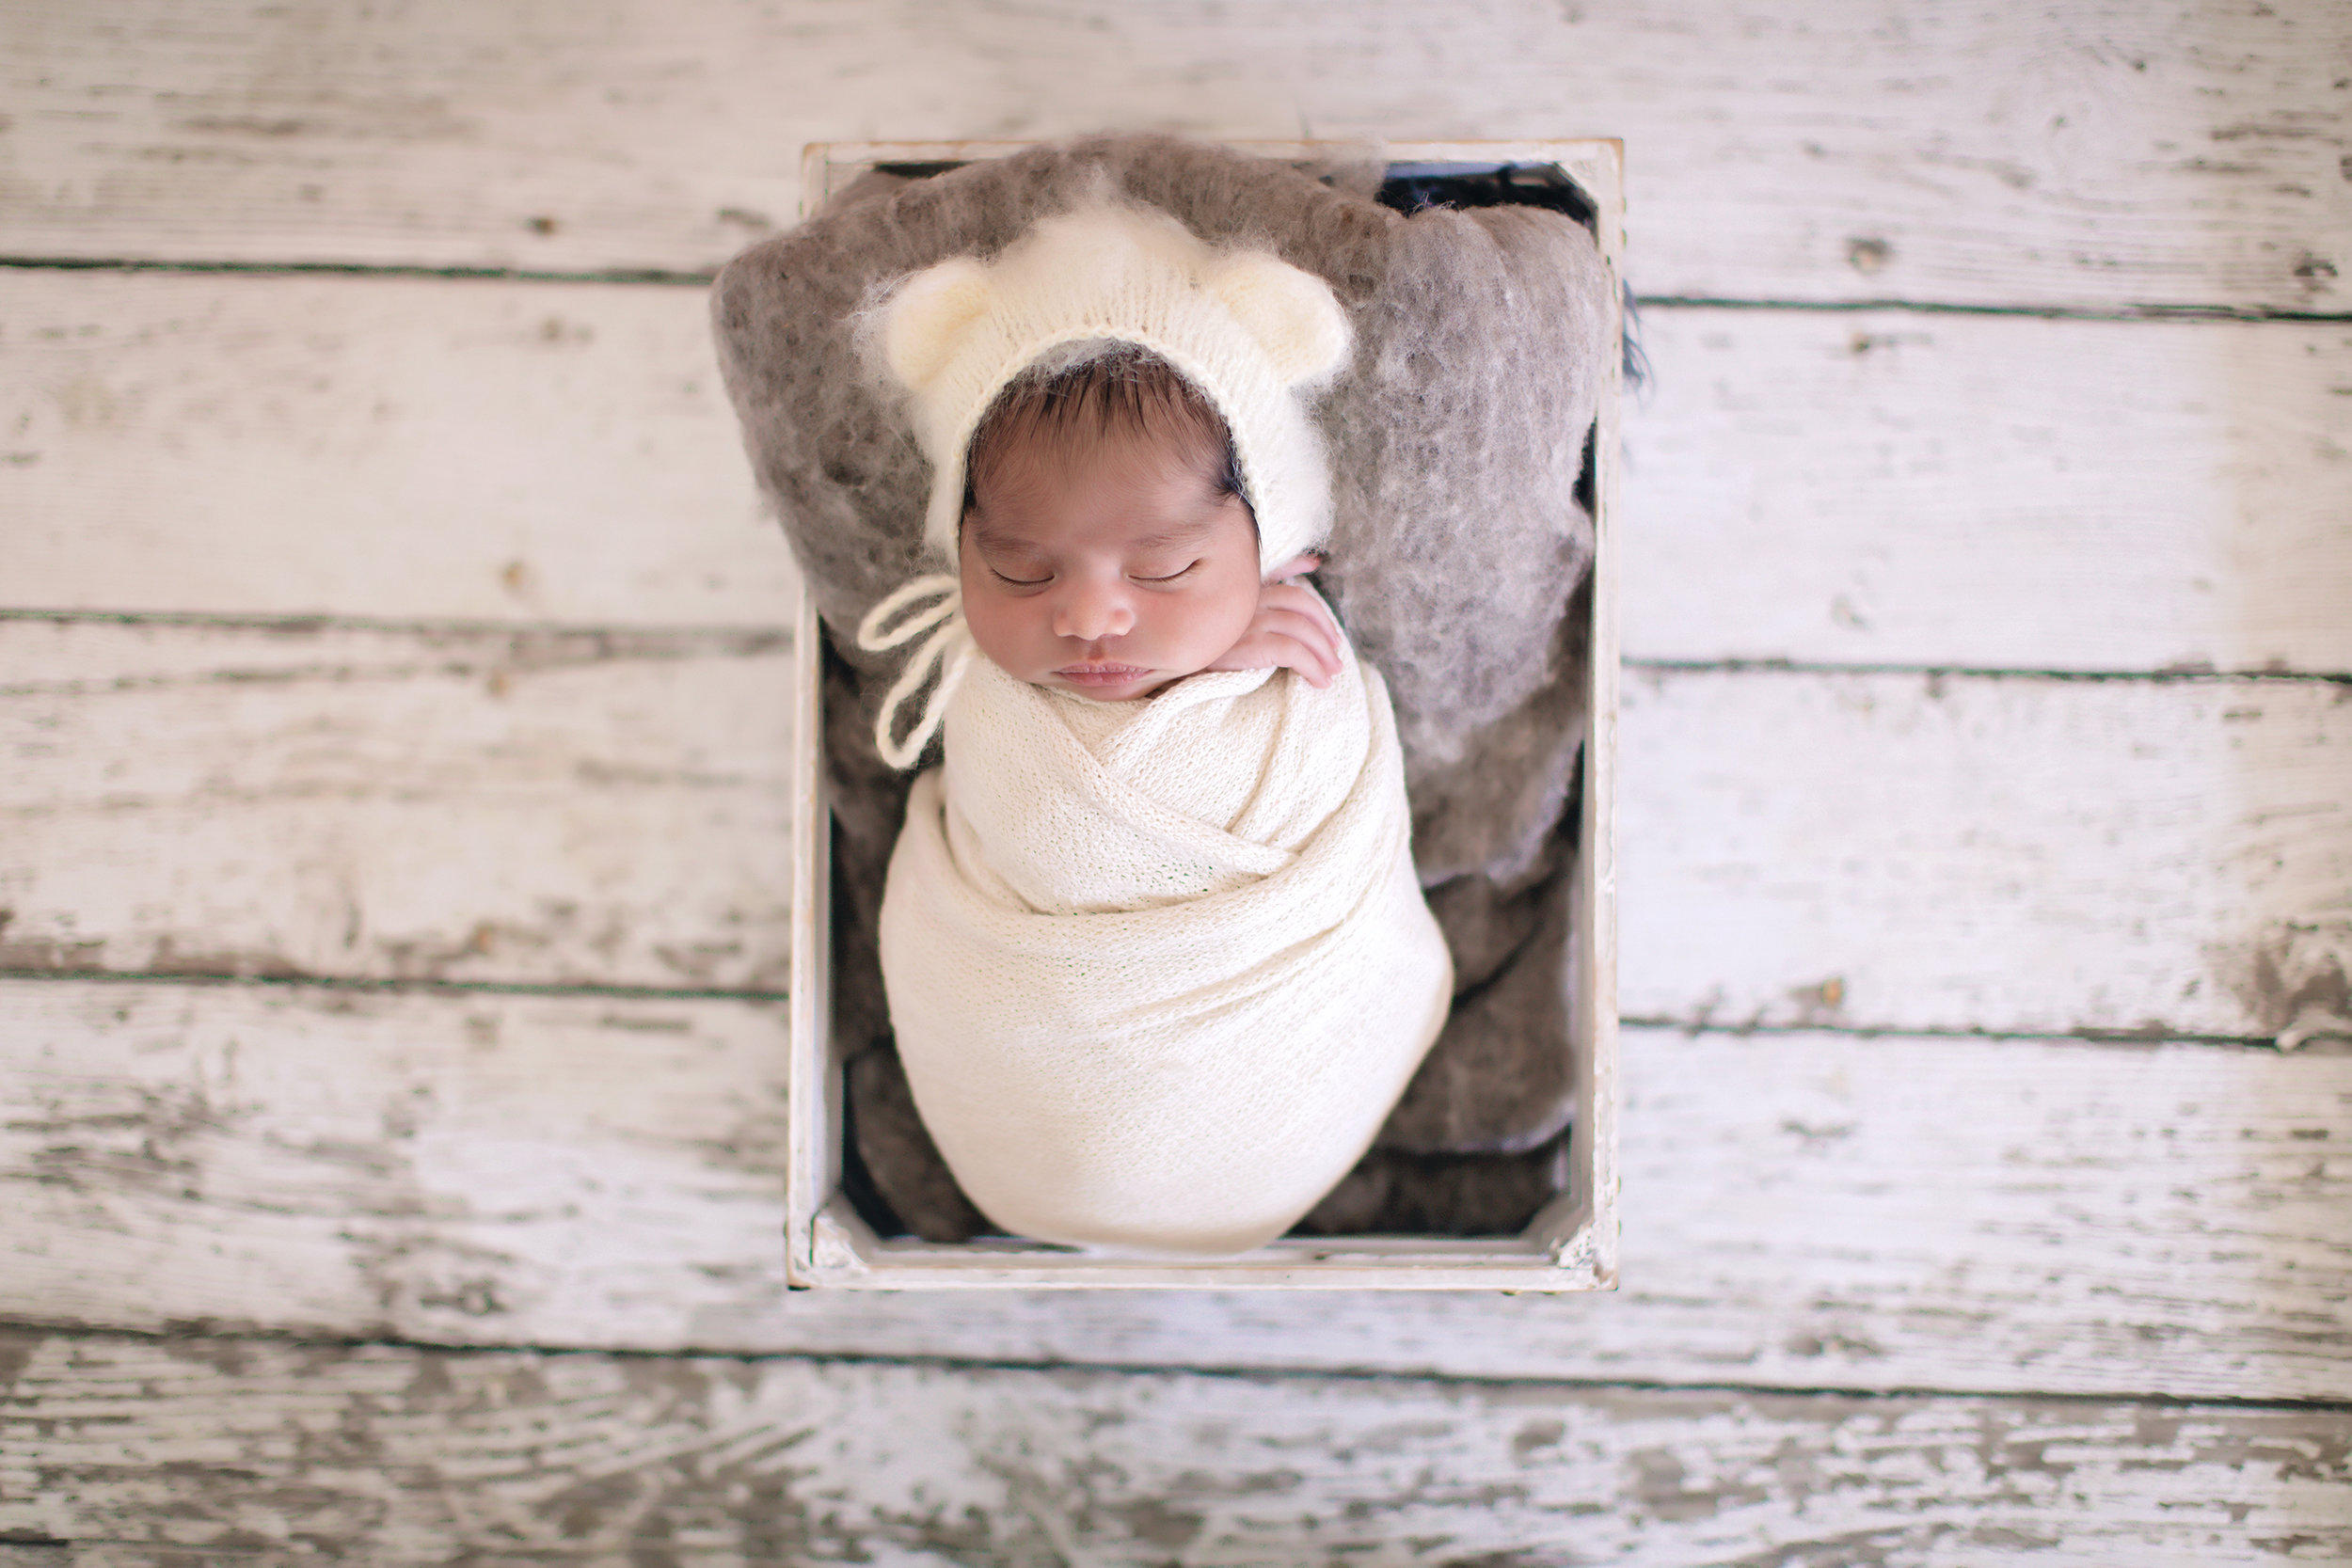 Newborn baby boy is posed in a crate - newborn baby photoshoot ideas. Calgary and Airdrie, Alberta baby and newborn photographer.